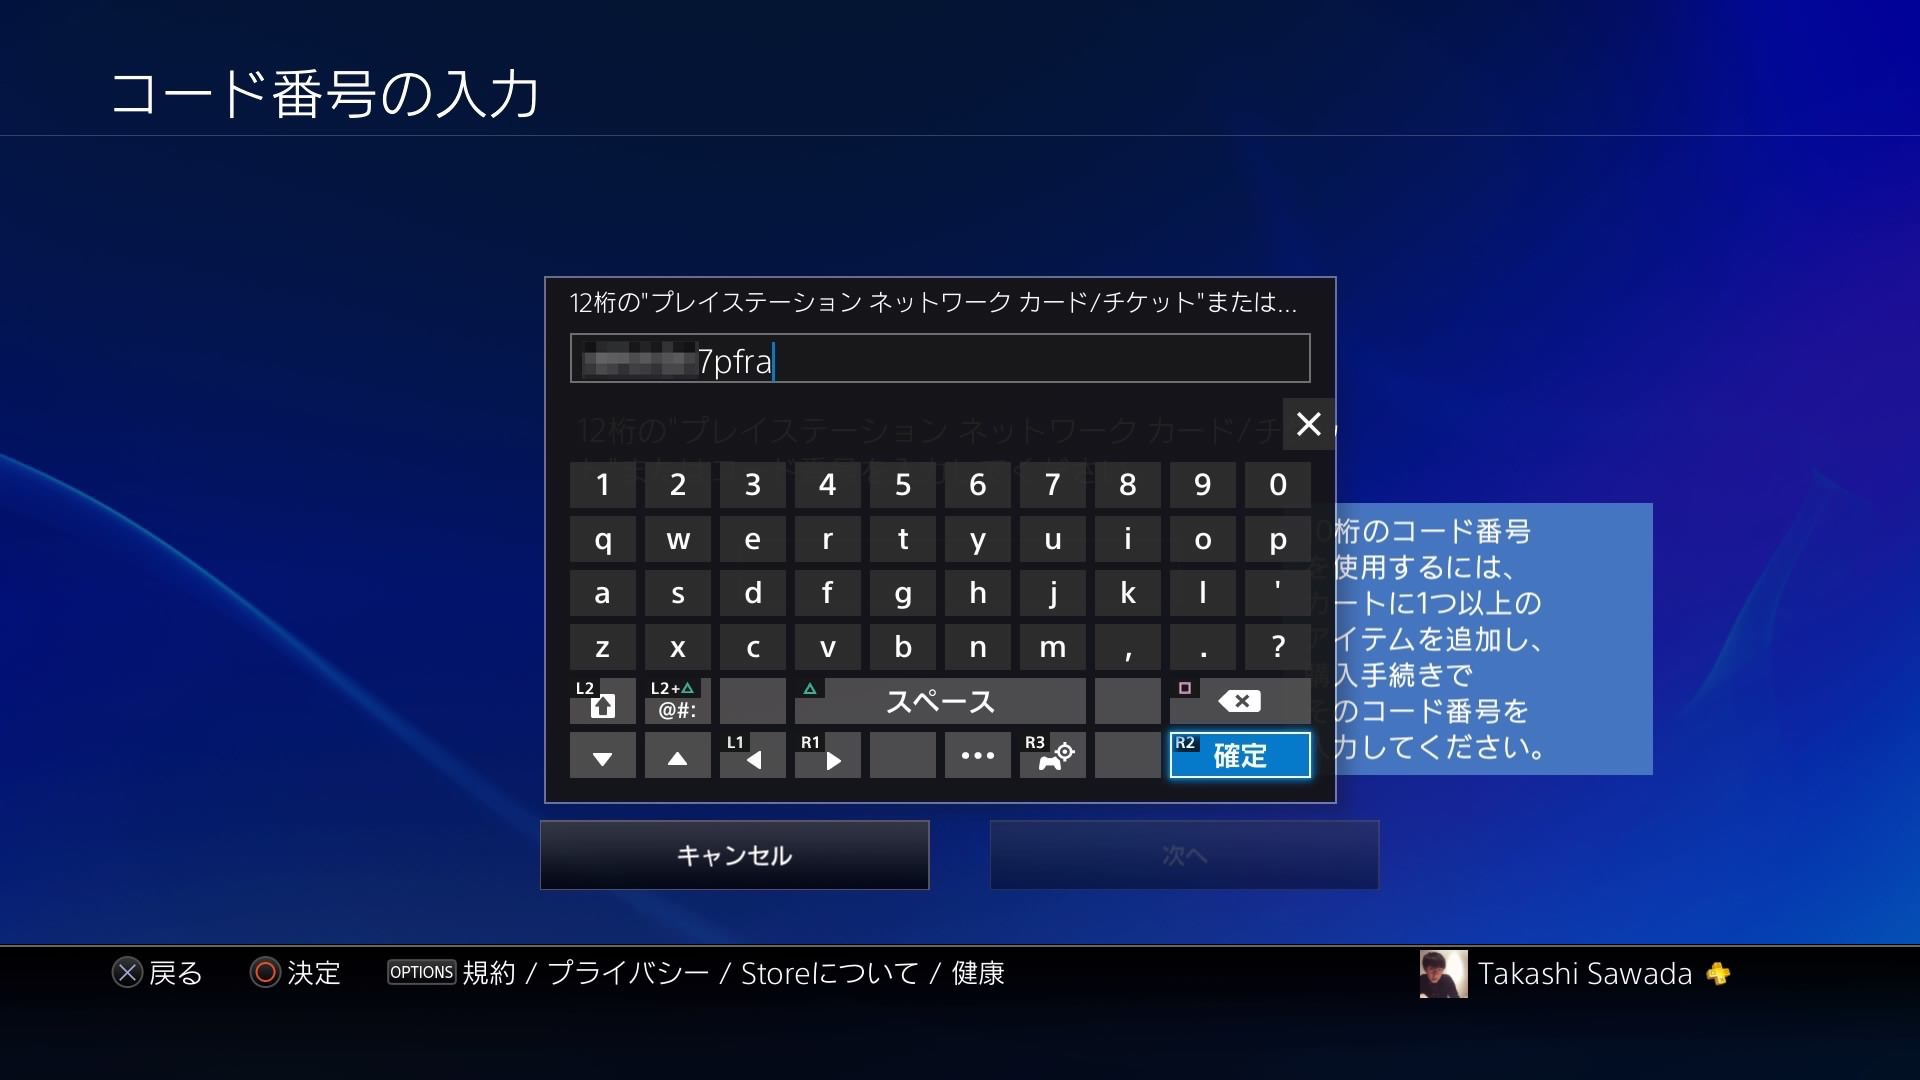 How to download product code contents for playstation 4 3